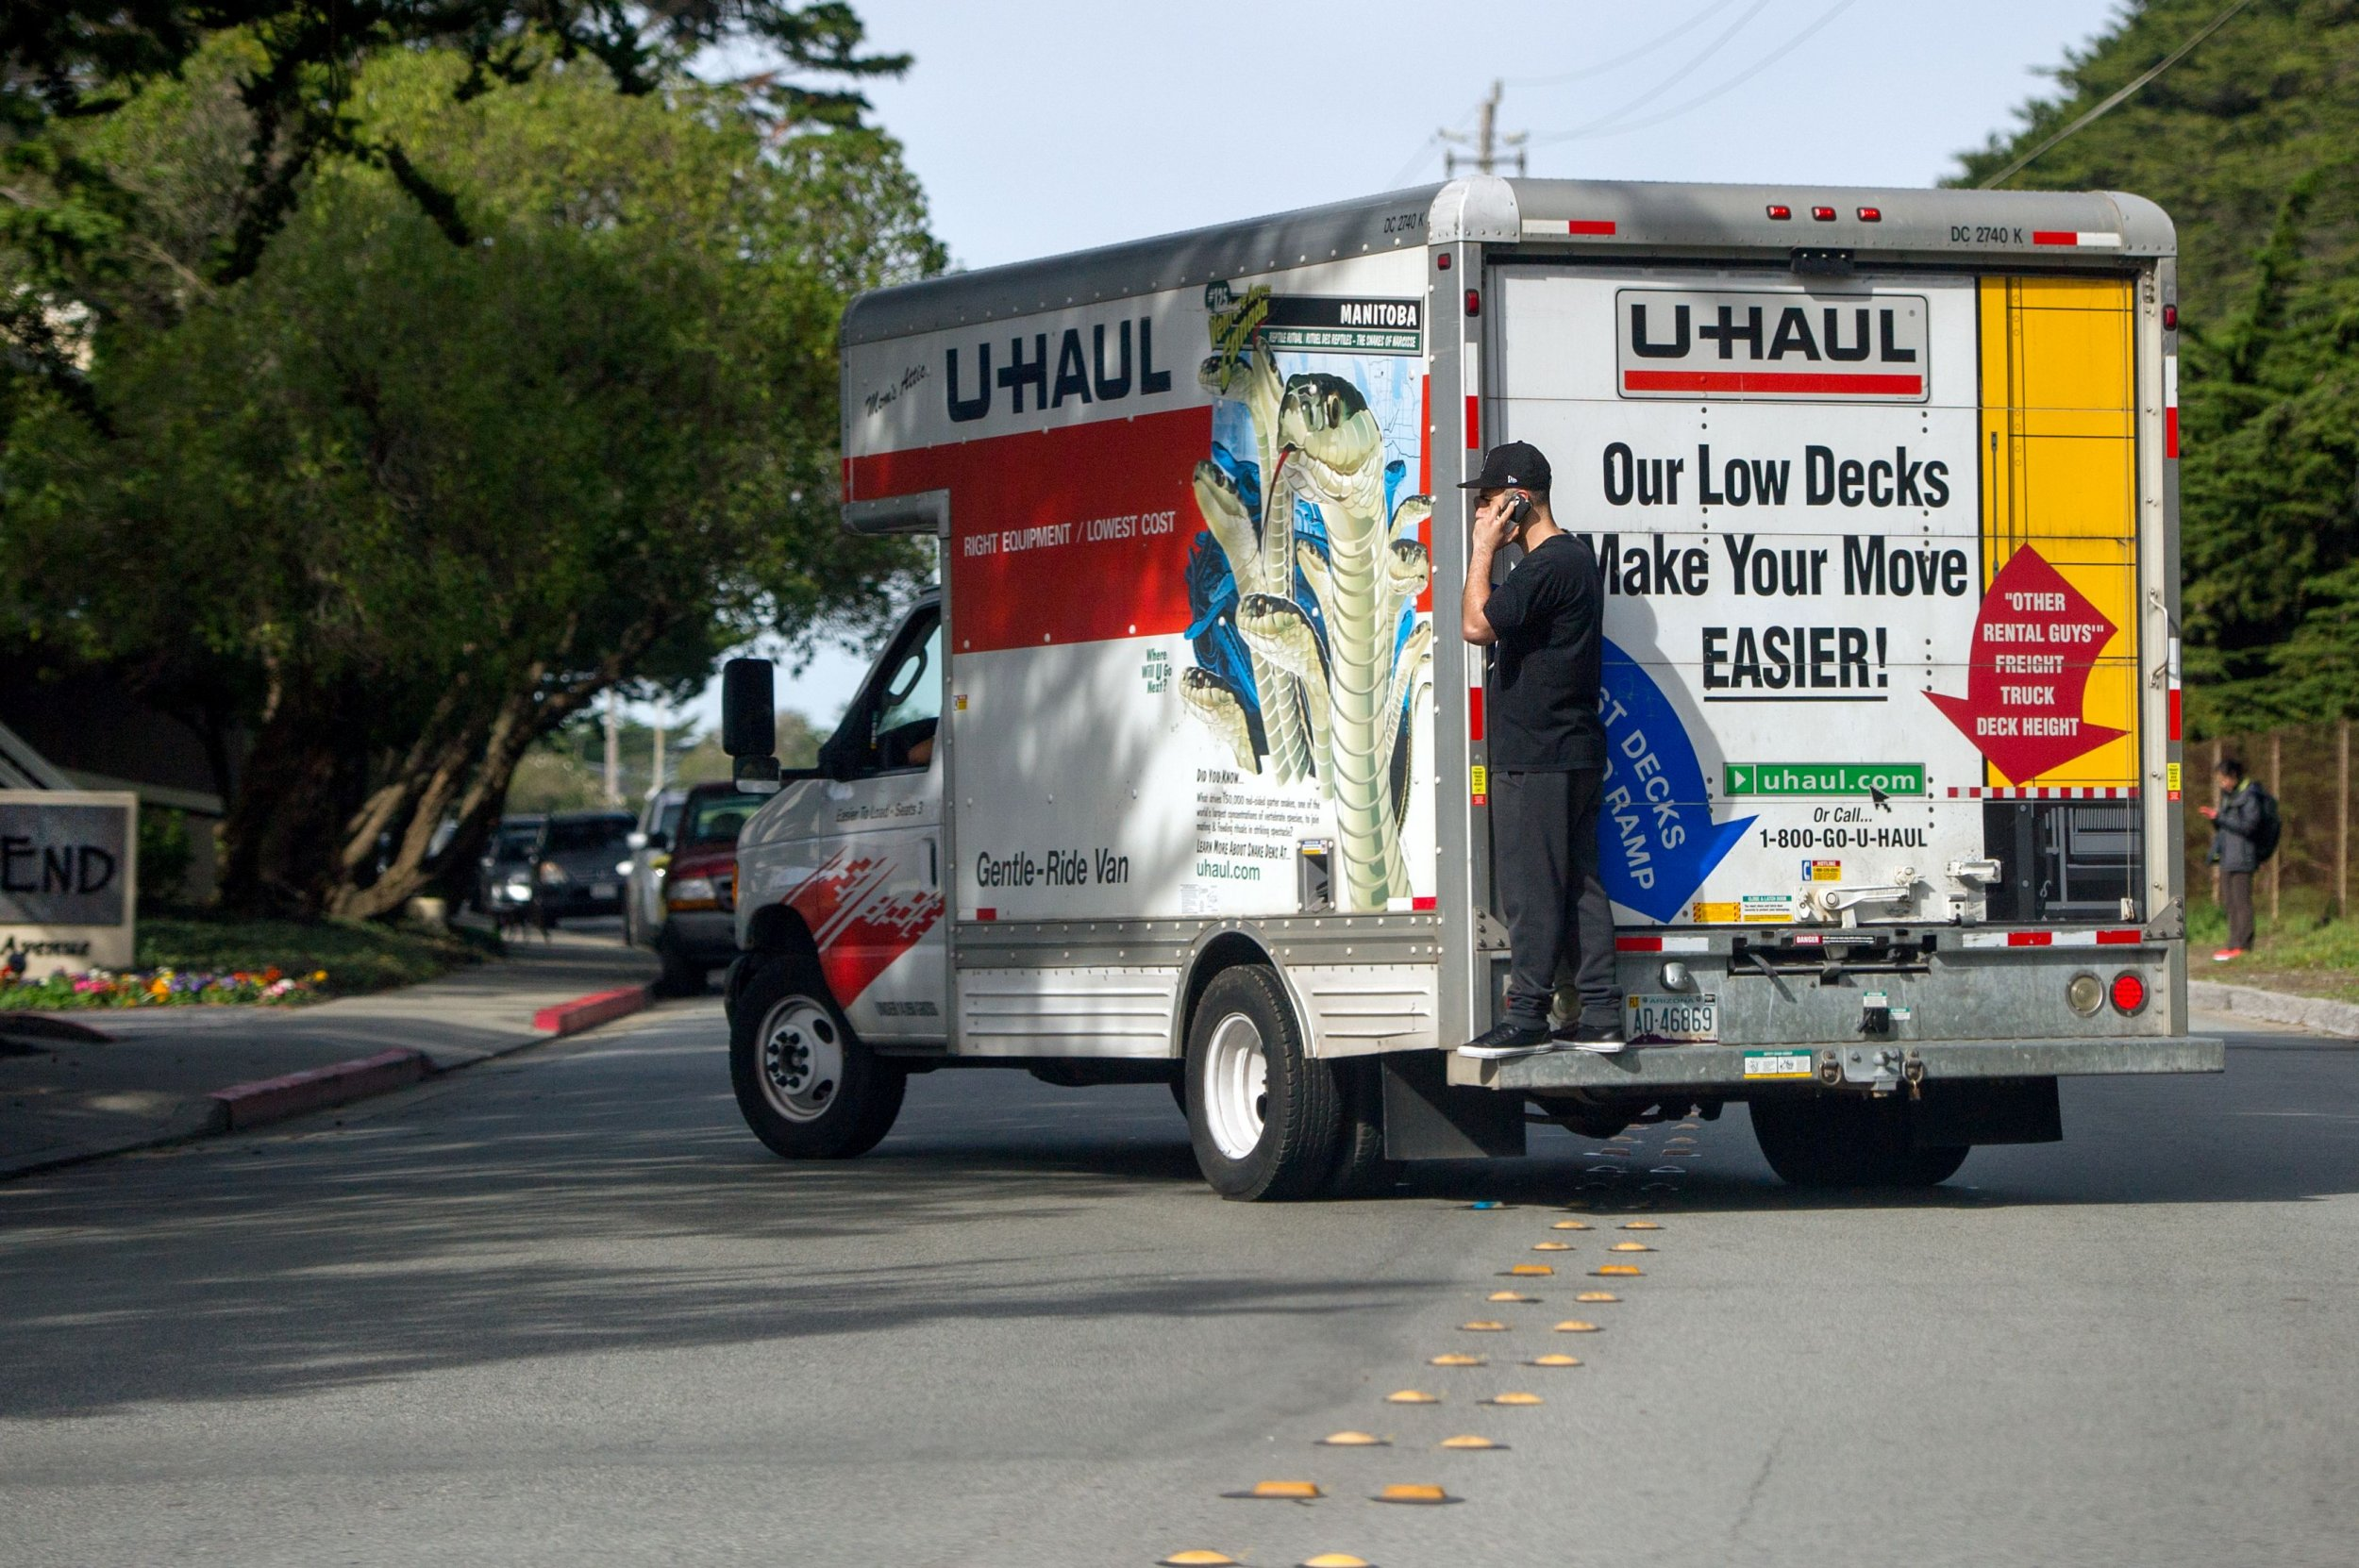 GettyImages-UHaul truck